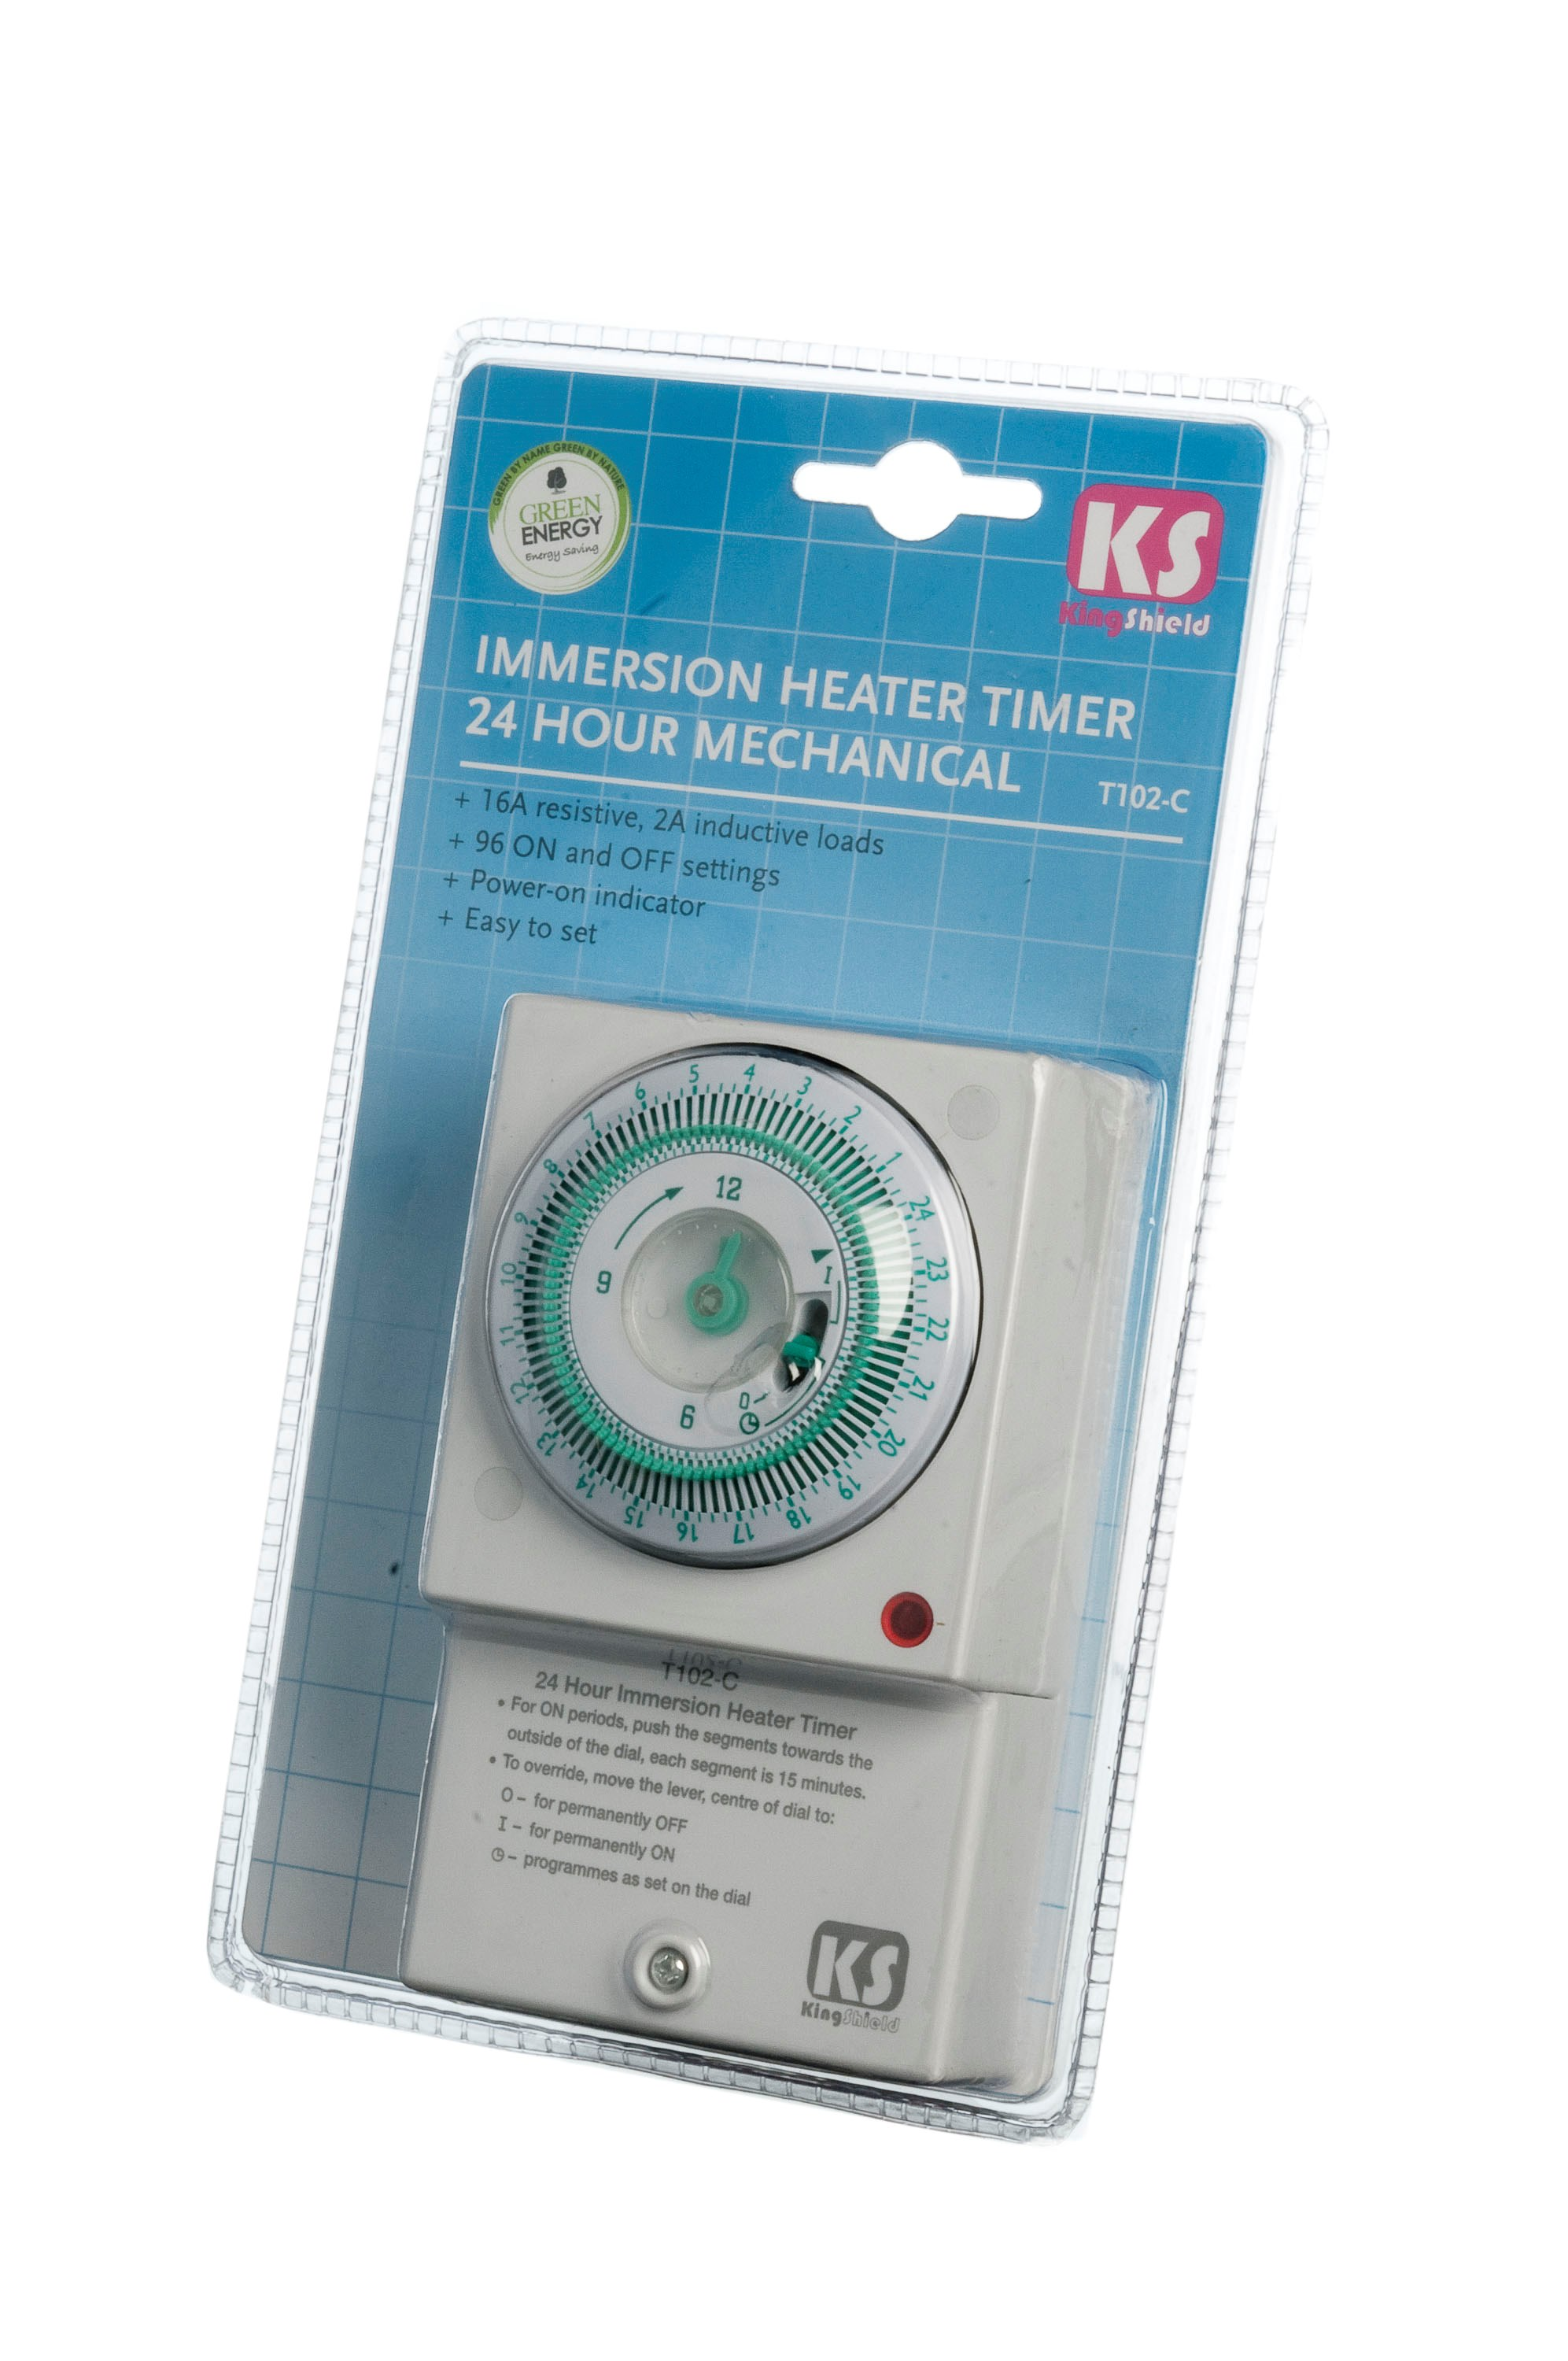 Kingshield  24 Hour Immersion Heater Timer